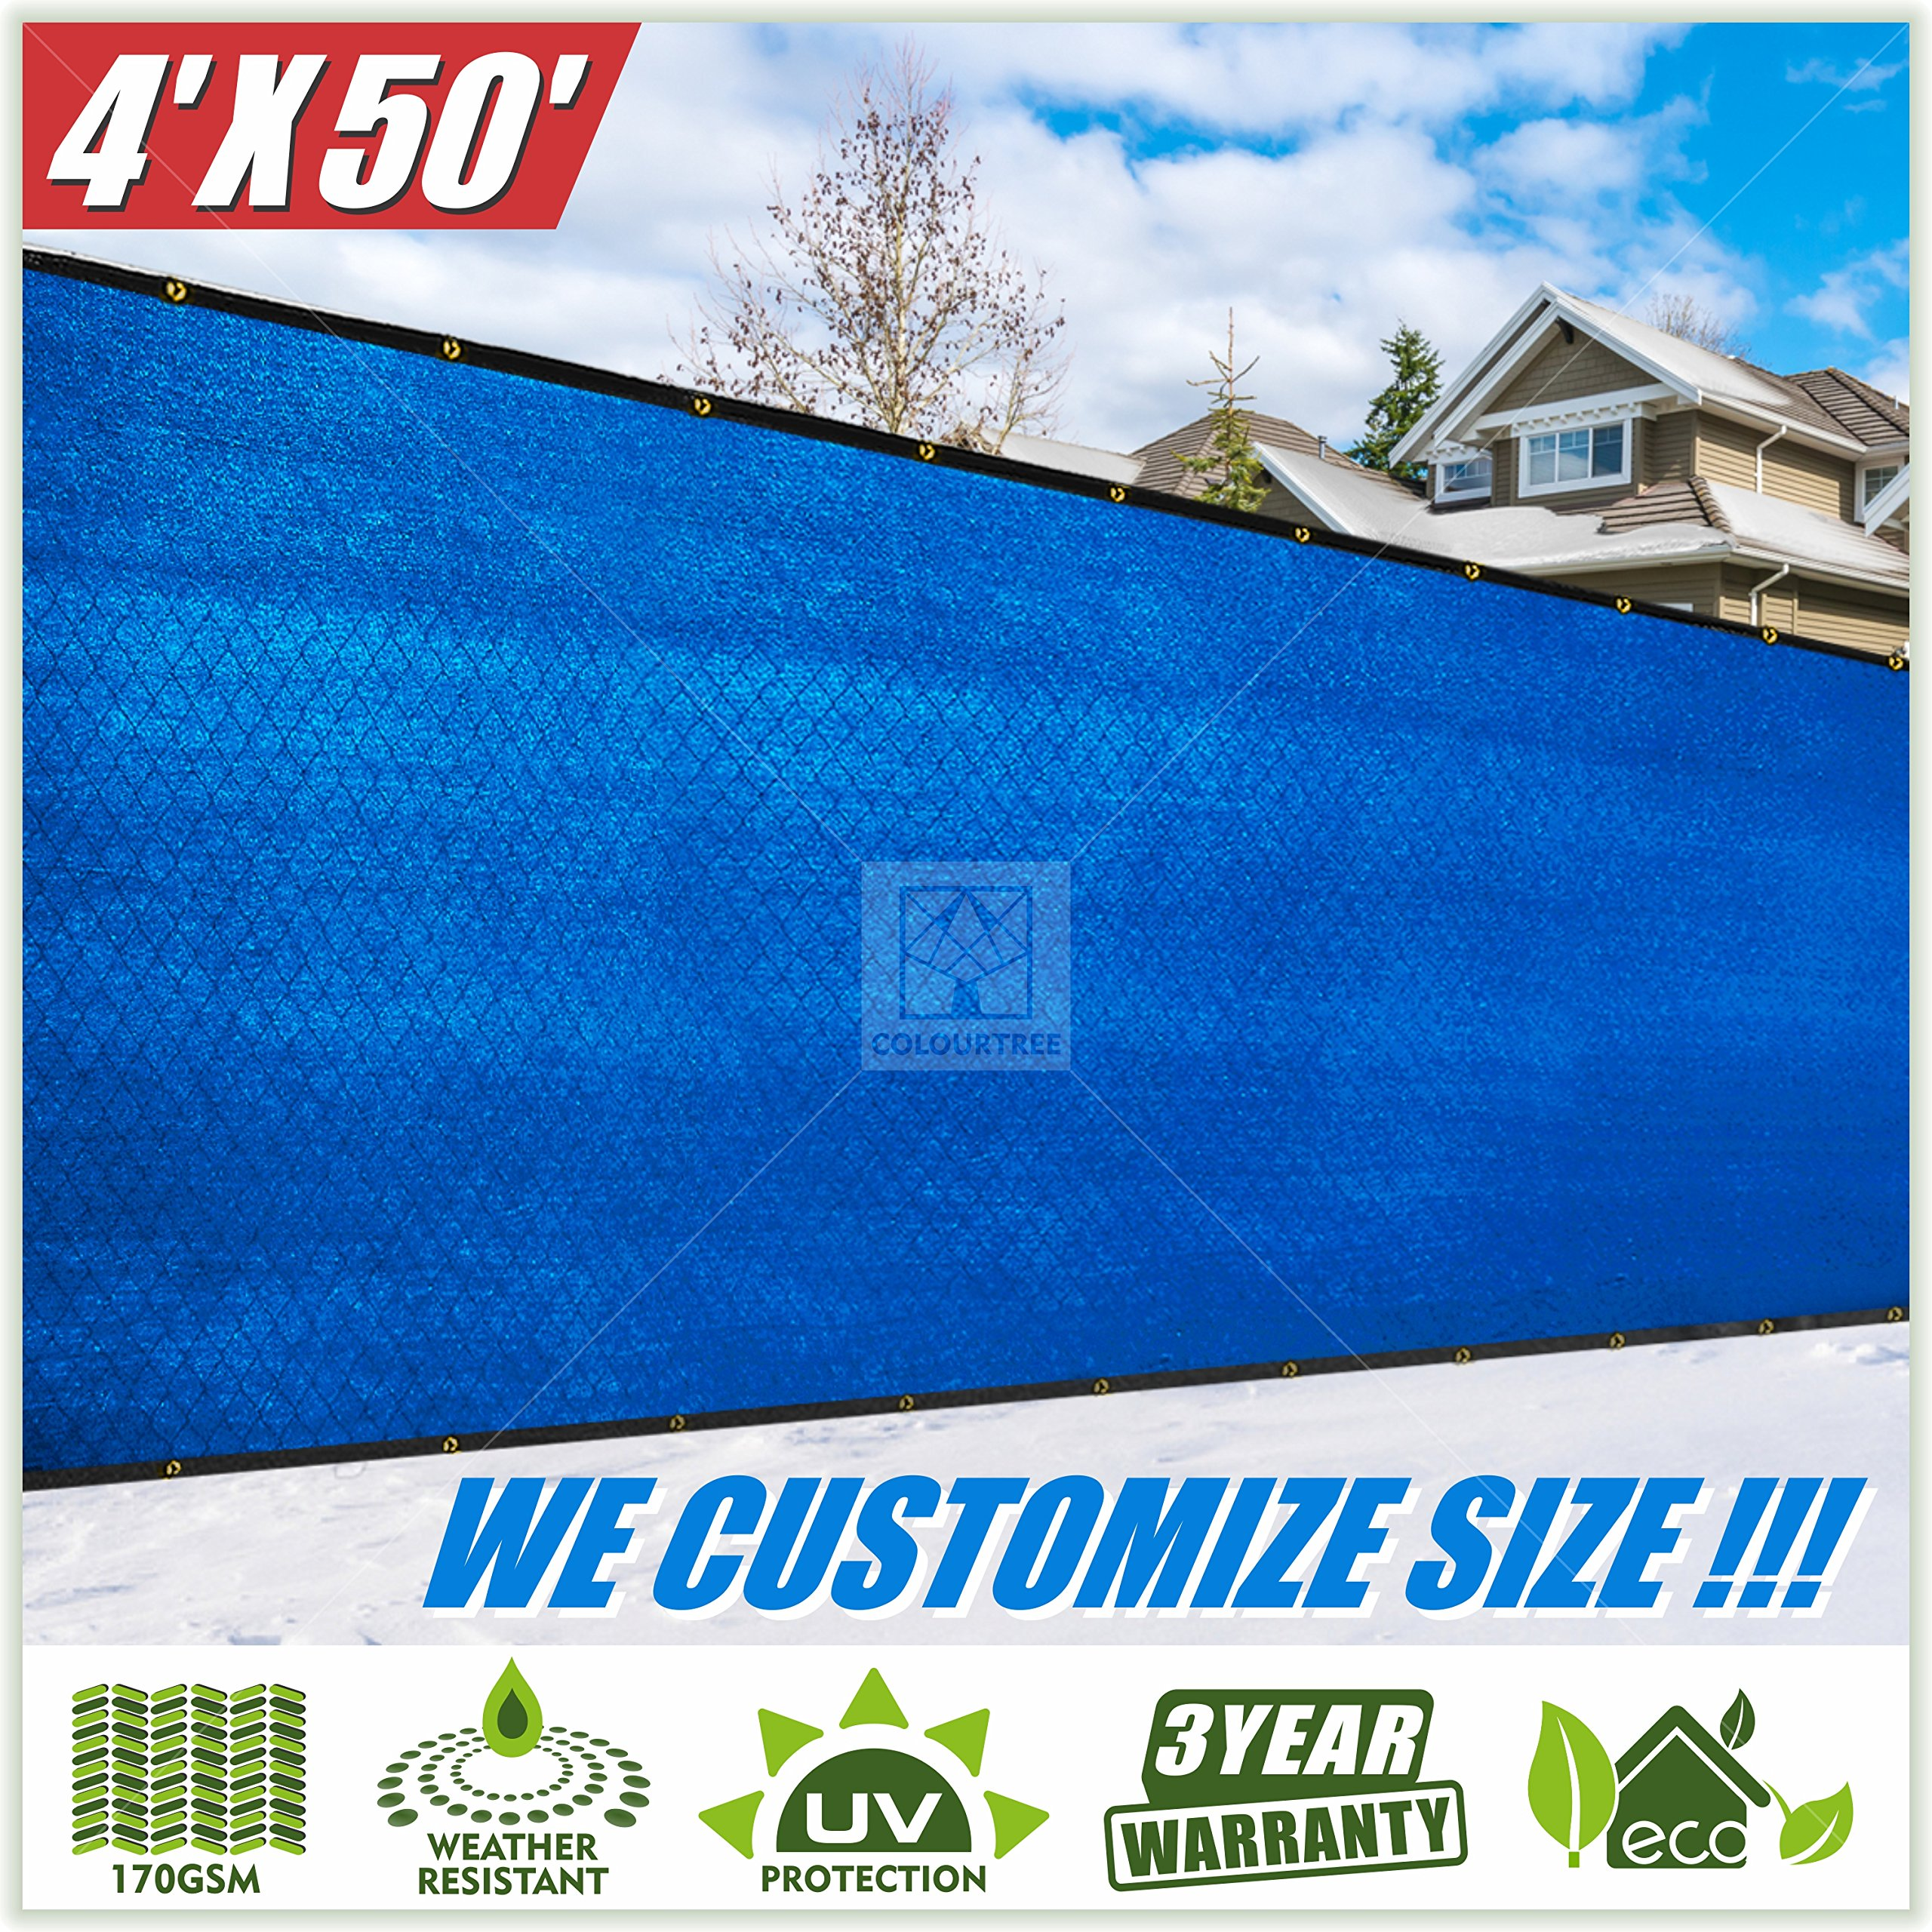 ColourTree 4' x 50' Blue Fence Privacy Screen Windscreen Cover Fabric Shade Tarp Plant Greenhouse Netting Mesh Cloth - Commercial Grade 170 GSM - Heavy Duty - 3 Years Warranty (1, 4' x 50')